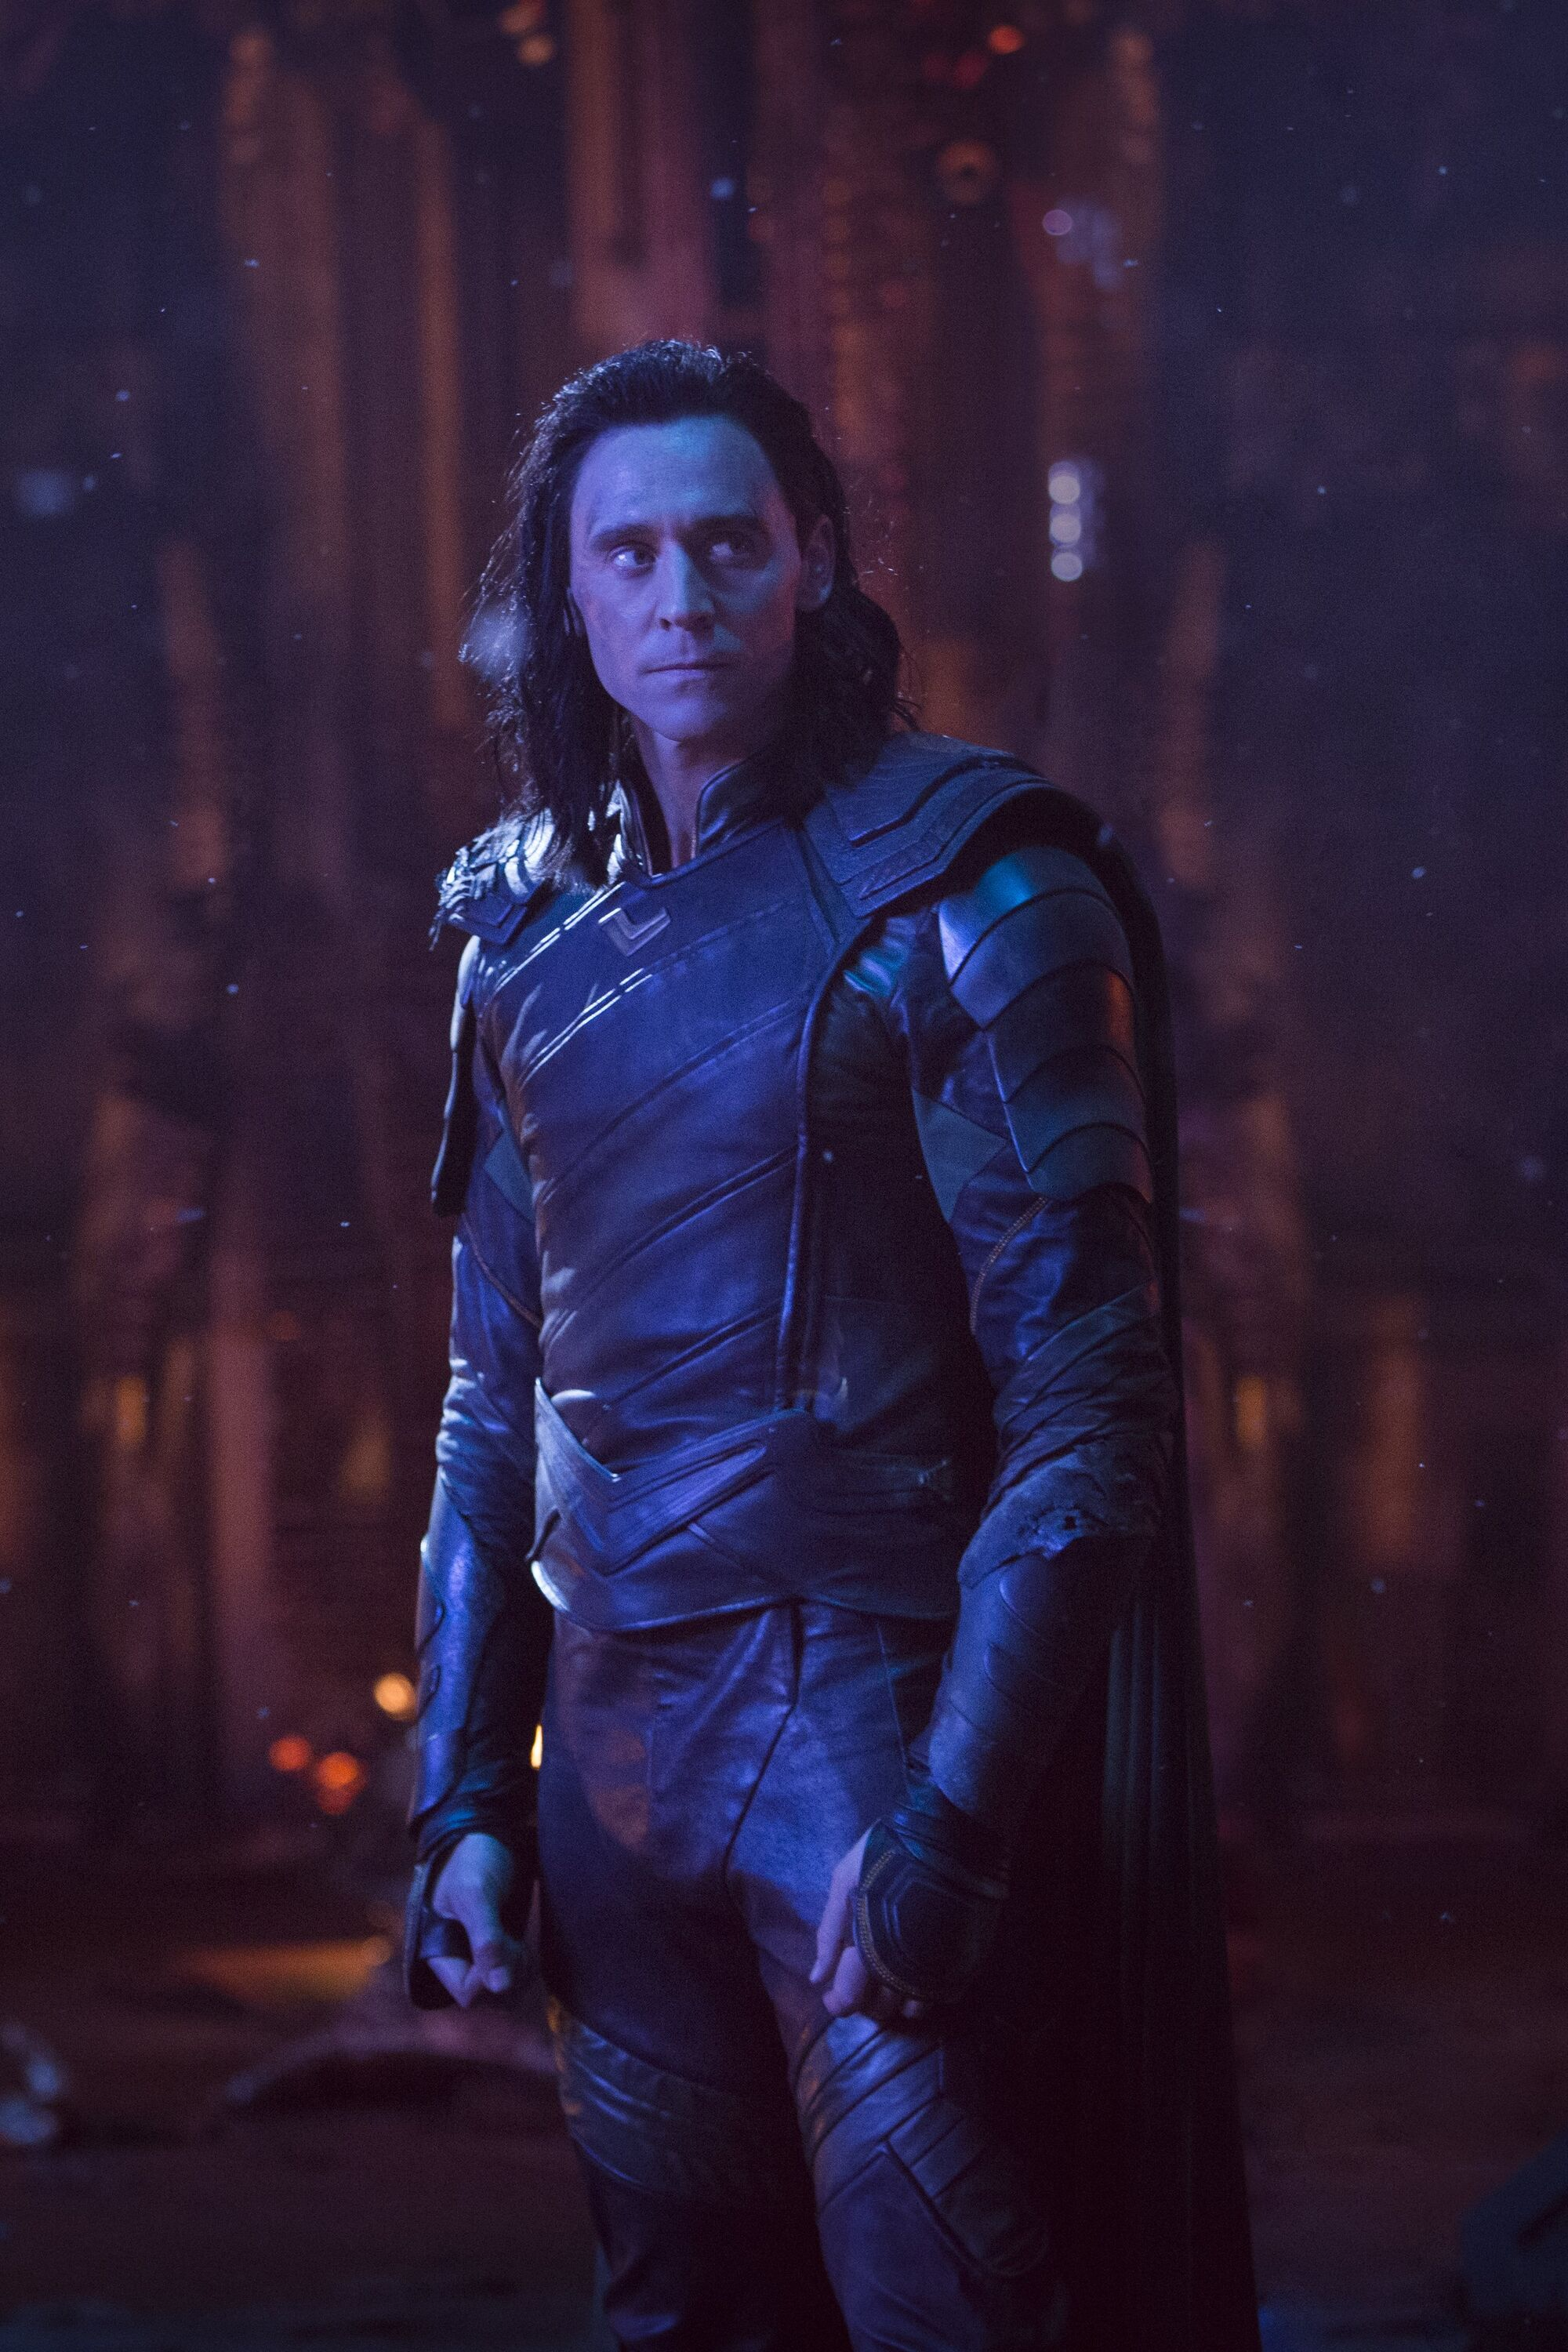 Loki Laufeyson (Earth-199999) | Marvel Database | FANDOM powered by